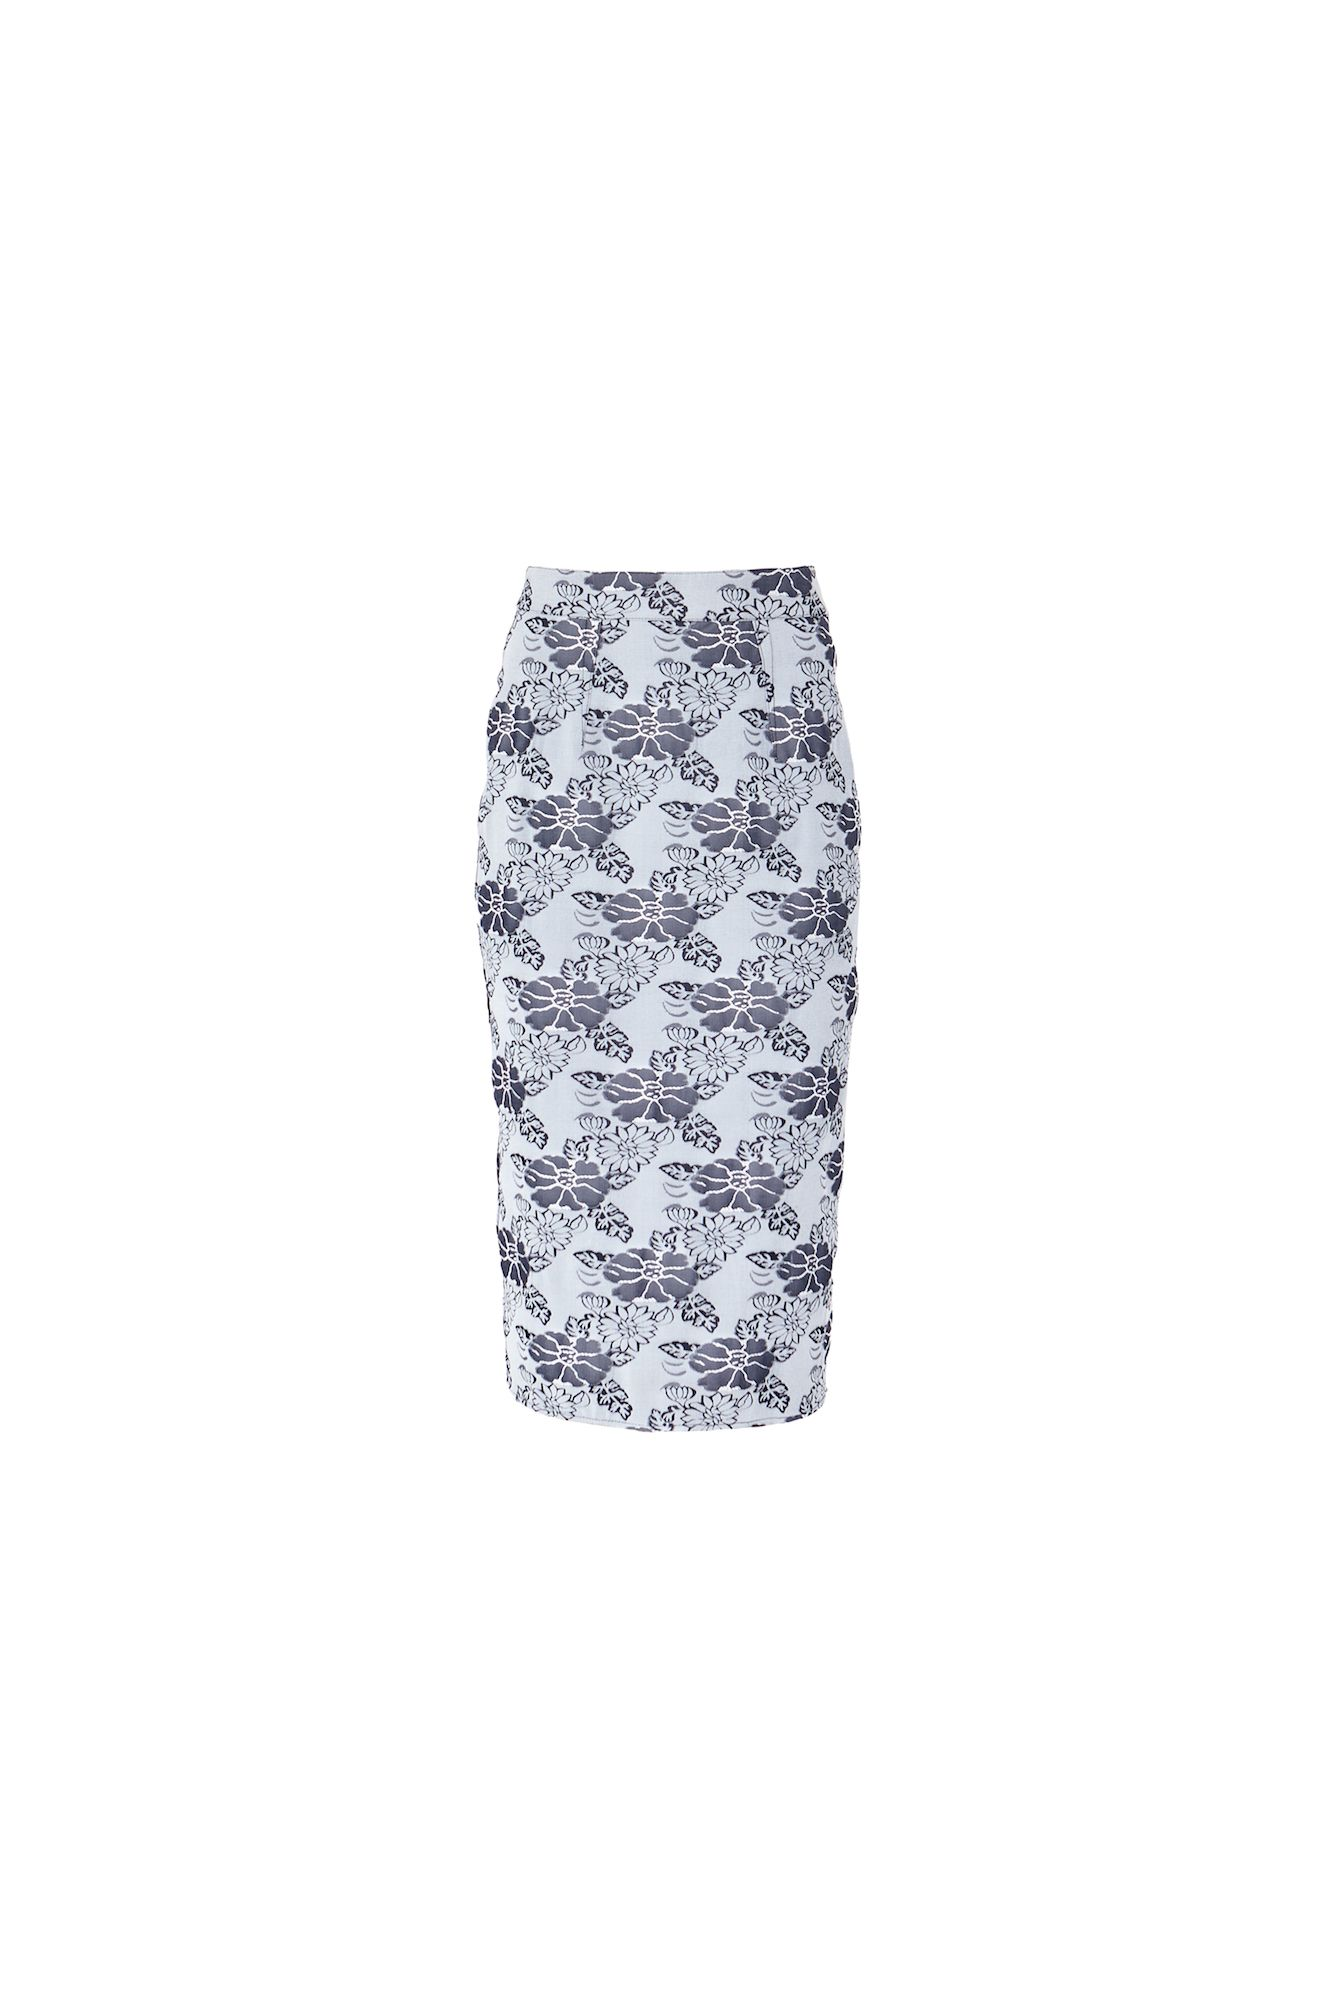 MAIOCCI Collection MAIOCCI Collection Form Fitting Floral Skirt, Grey